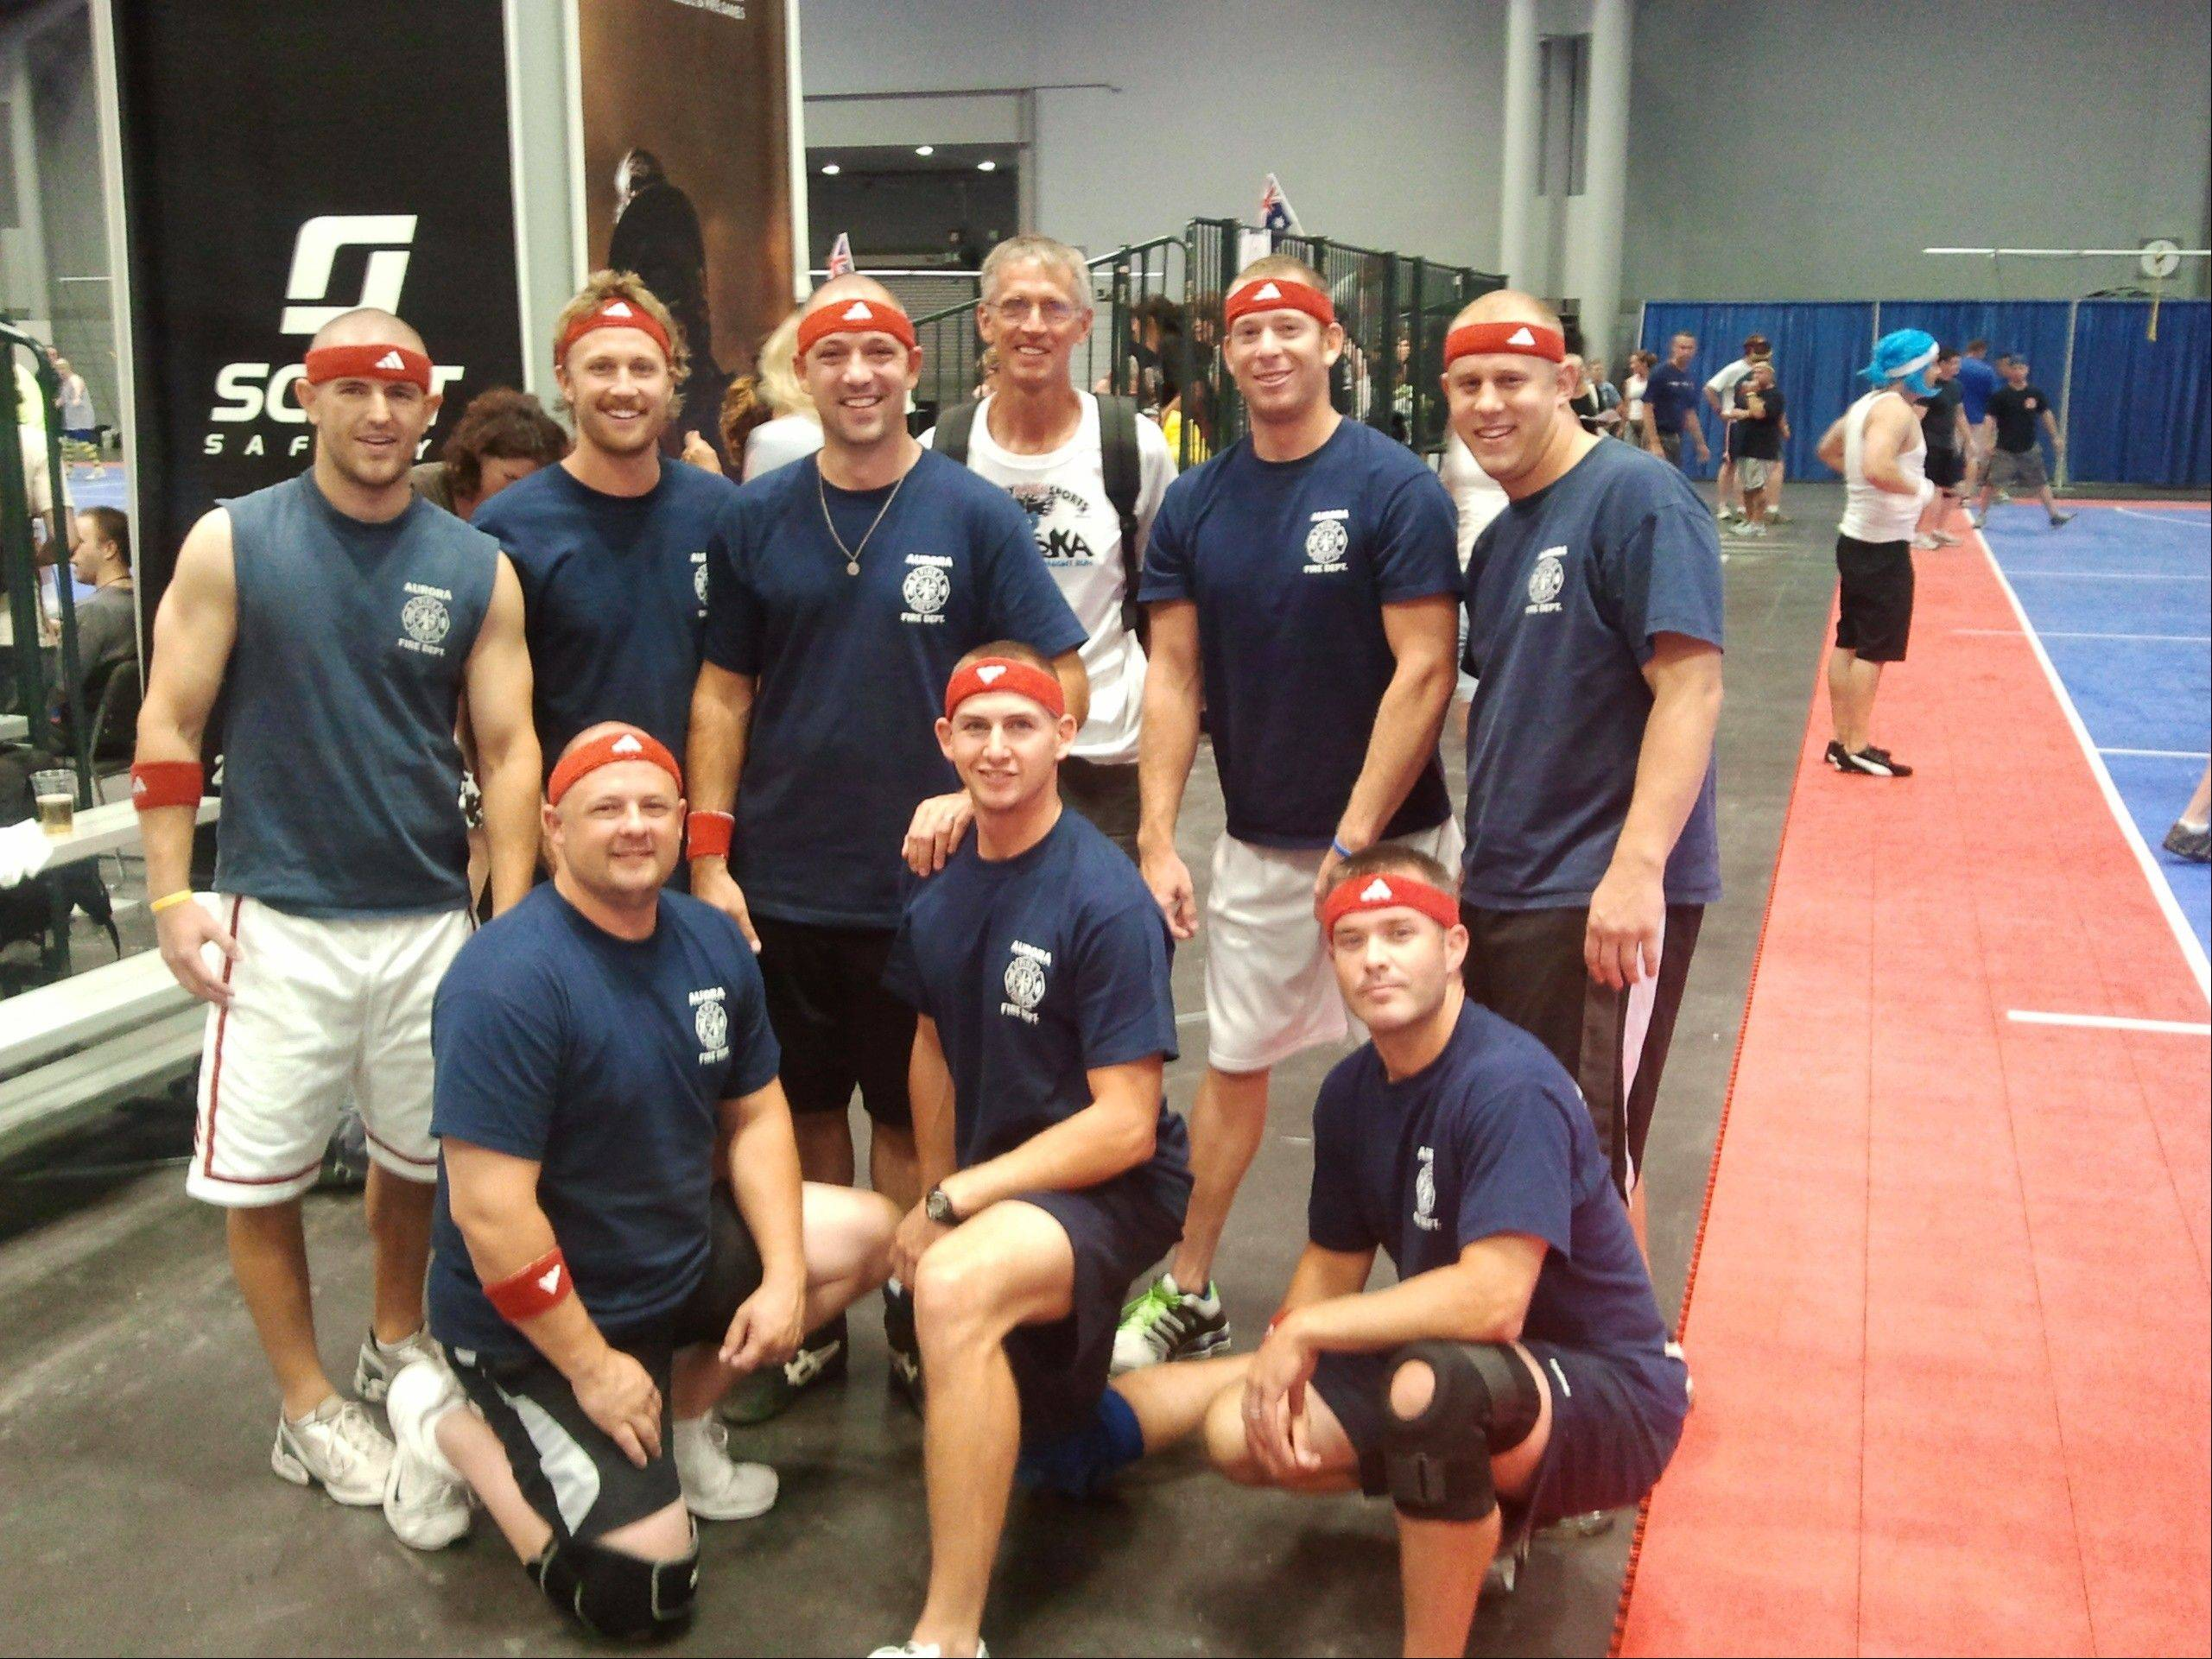 A dodgeball team with seven Aurora firefighters and one from North Aurora won the gold medal at this year's World Police and Fire Games in New York City.